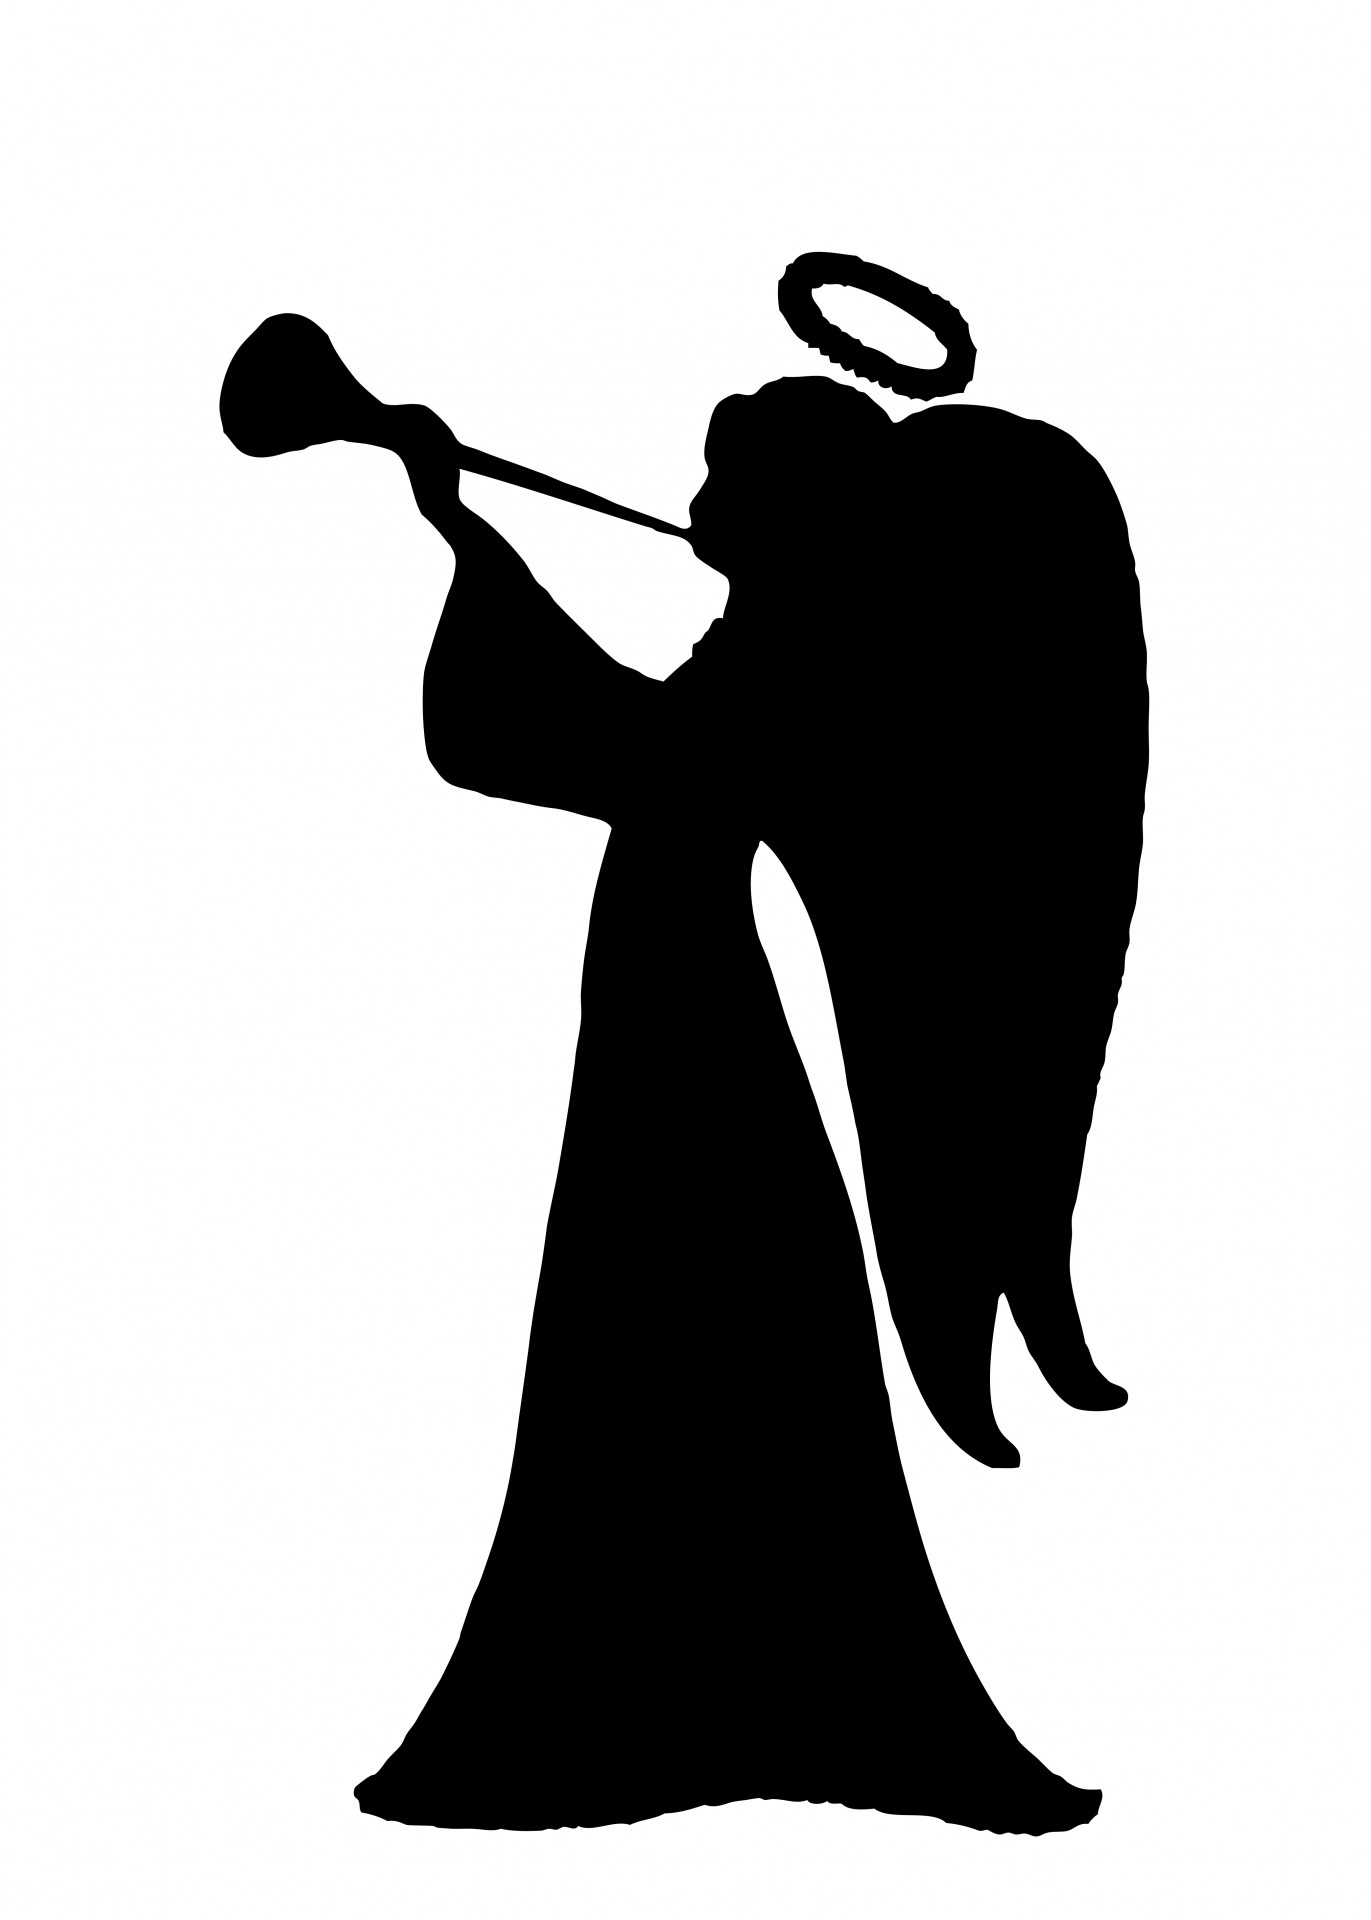 angel silhouette clip art at getdrawings com free for personal use rh getdrawings com free clipart of black angels free clipart images of angels